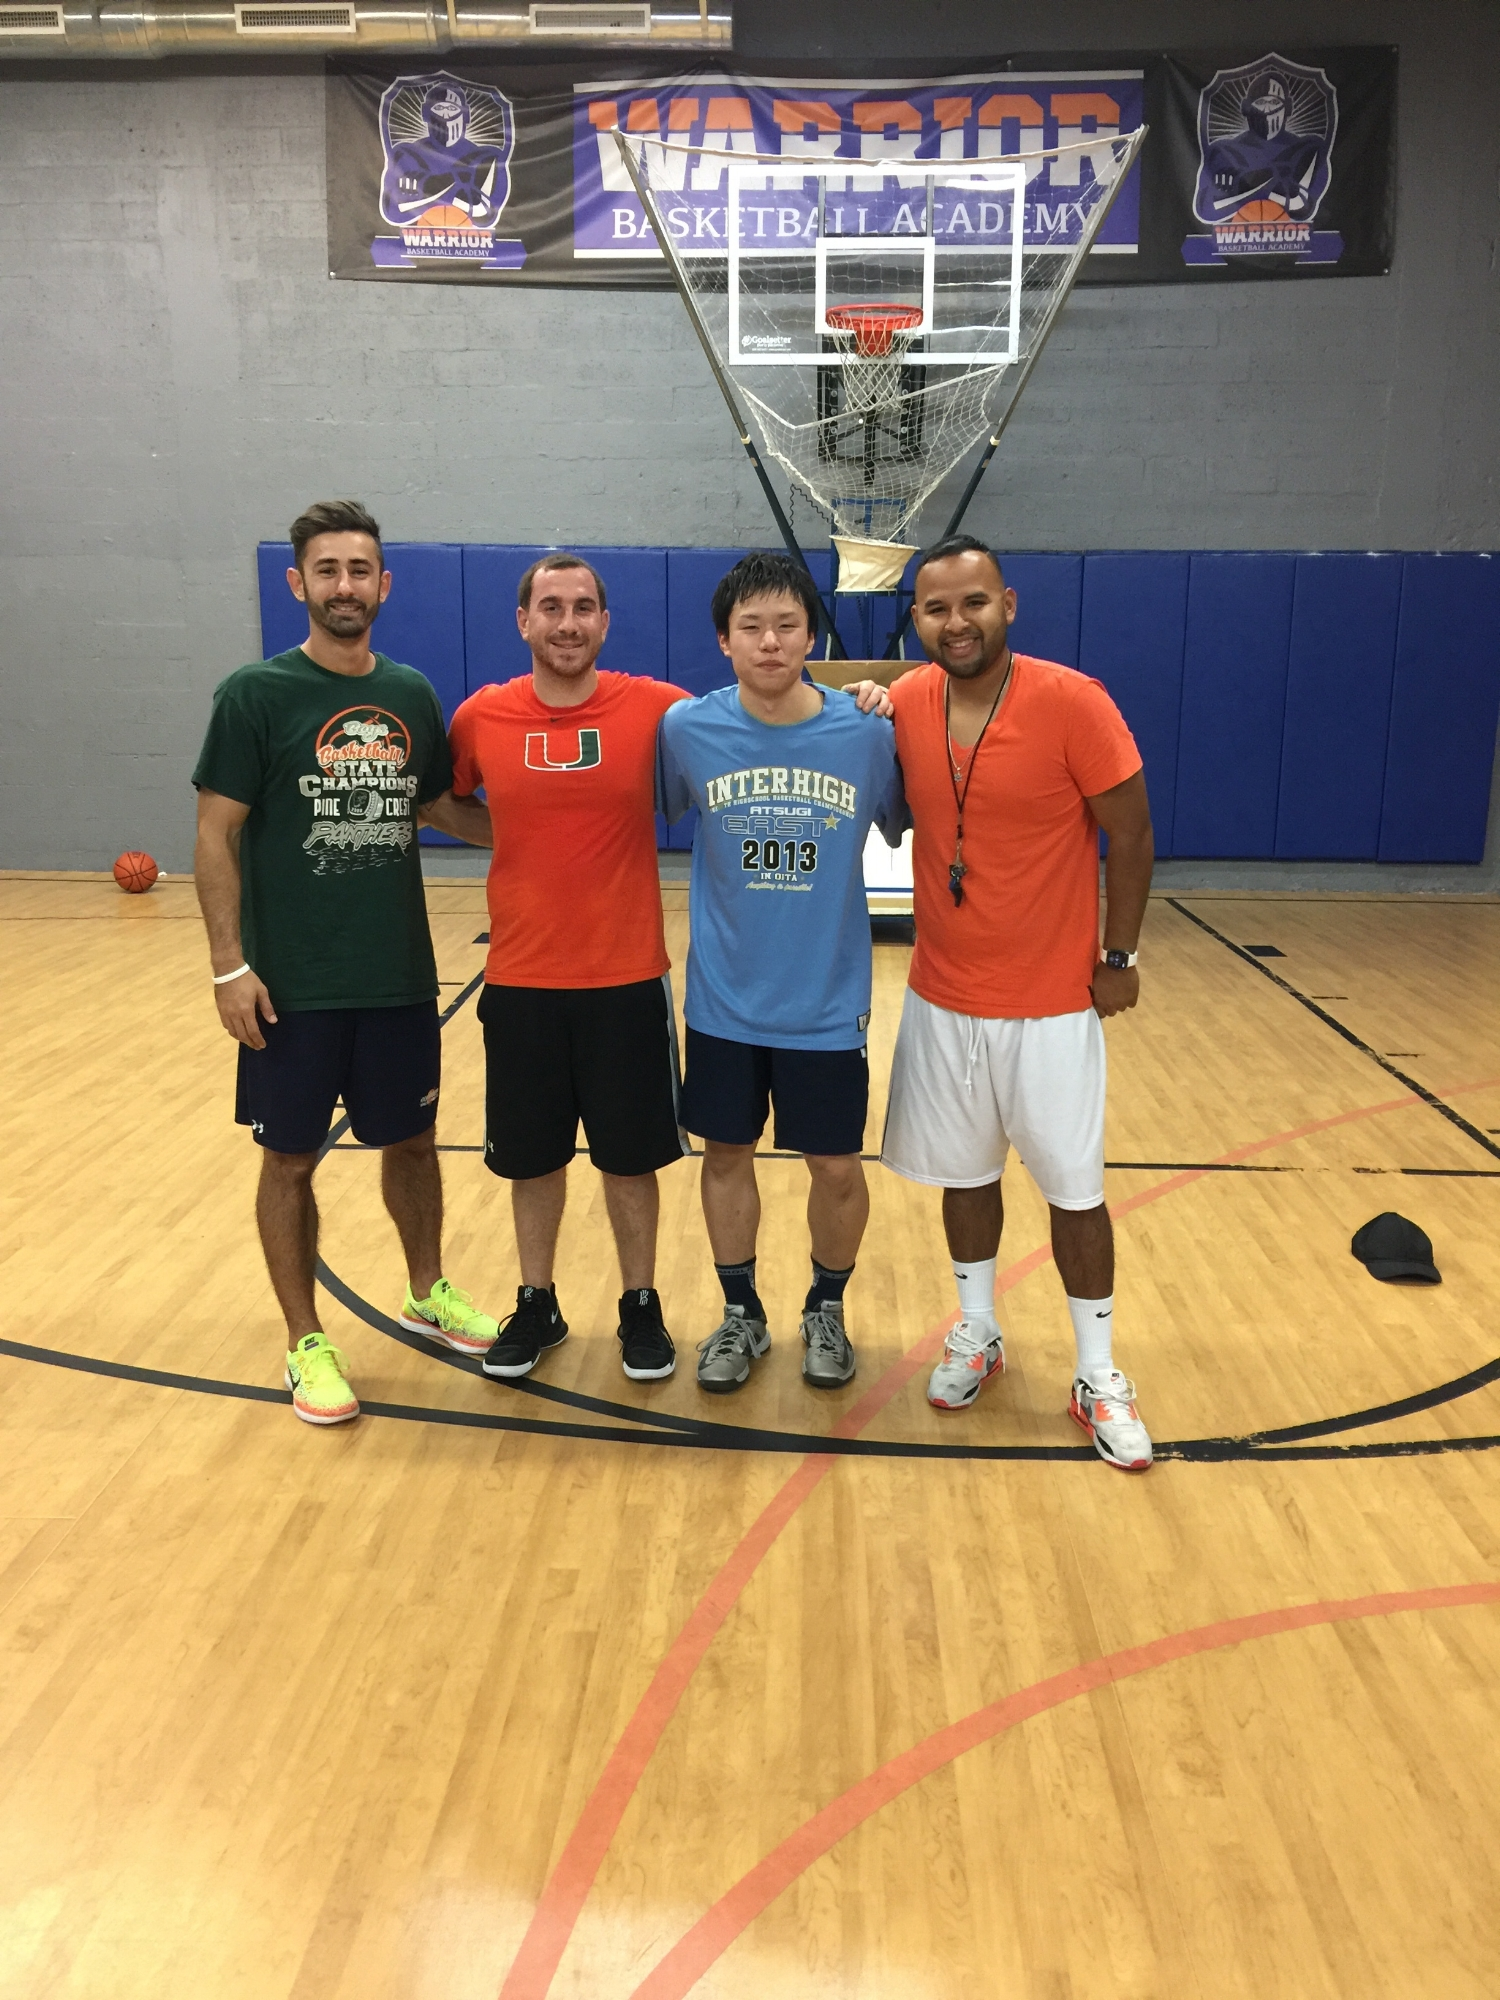 Kaz with Brandon and Luis the owner of Warrior's Basketball